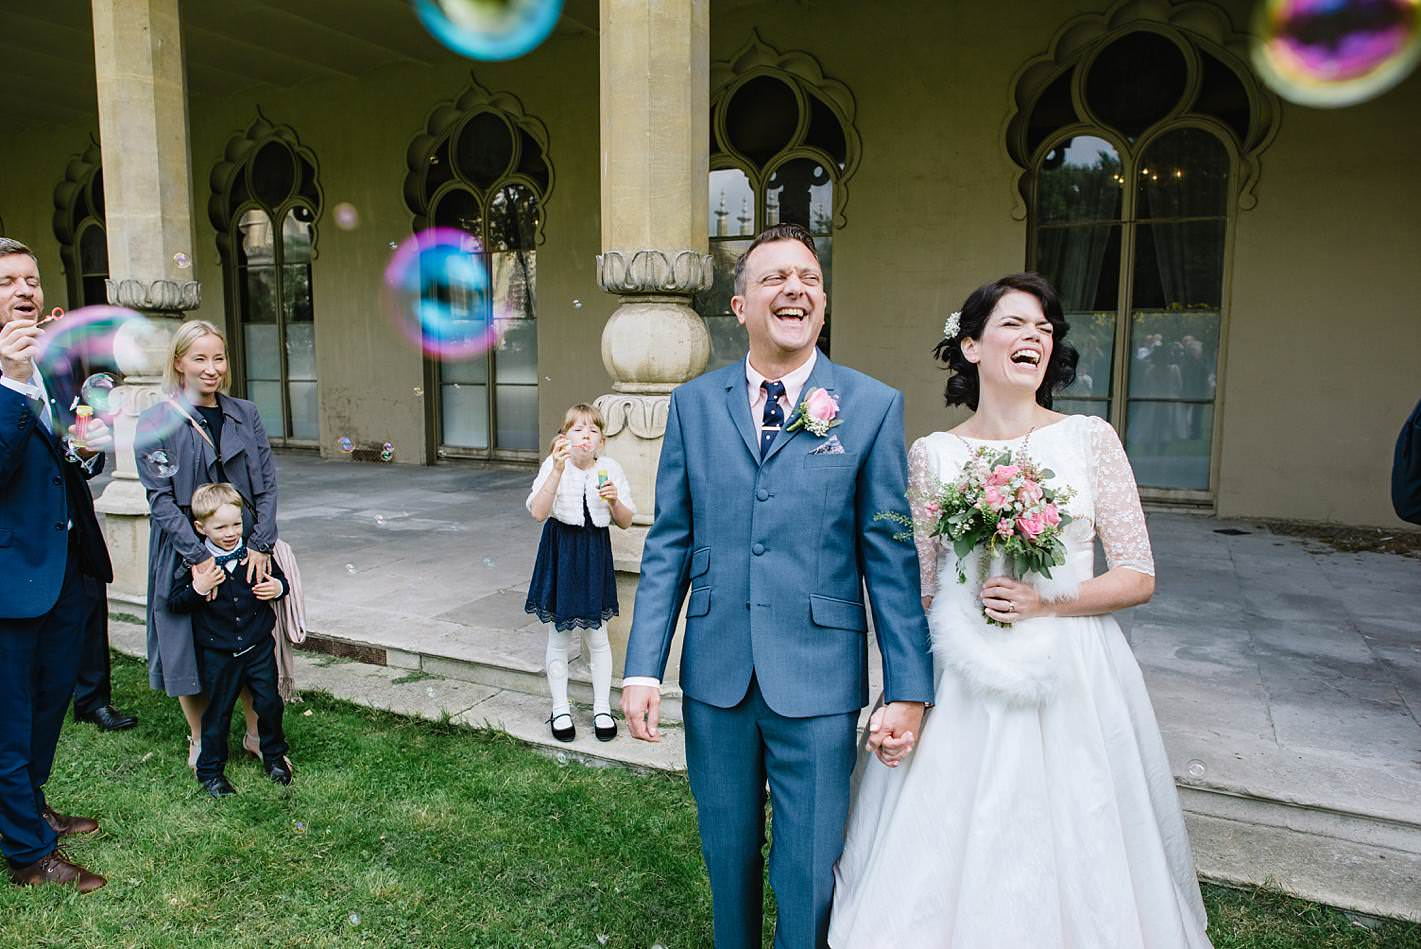 wedding bubbles bride and groom royal pavilion